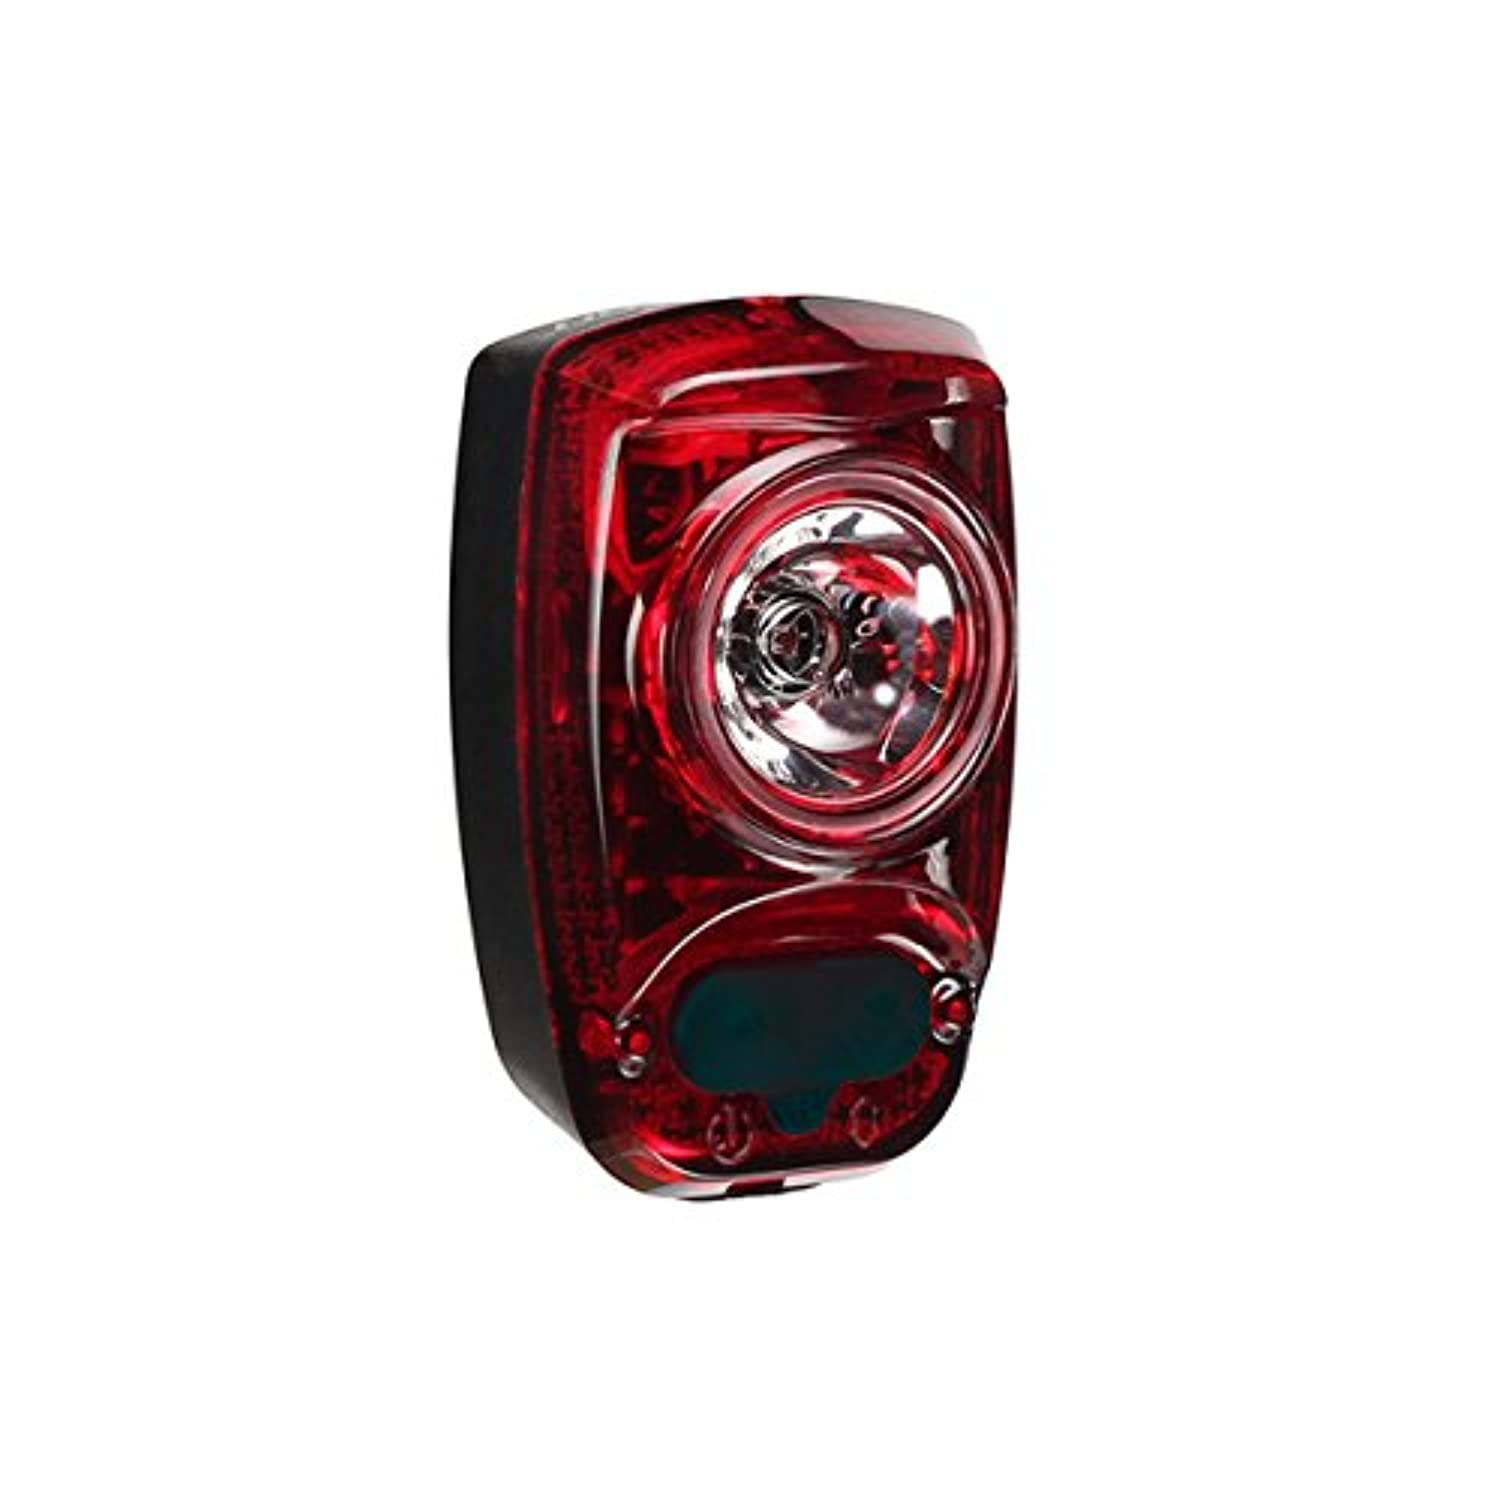 CygoLite Hotshot Pro 80 lm USB Rechargeable Bicycle Tail Light by Cygolite